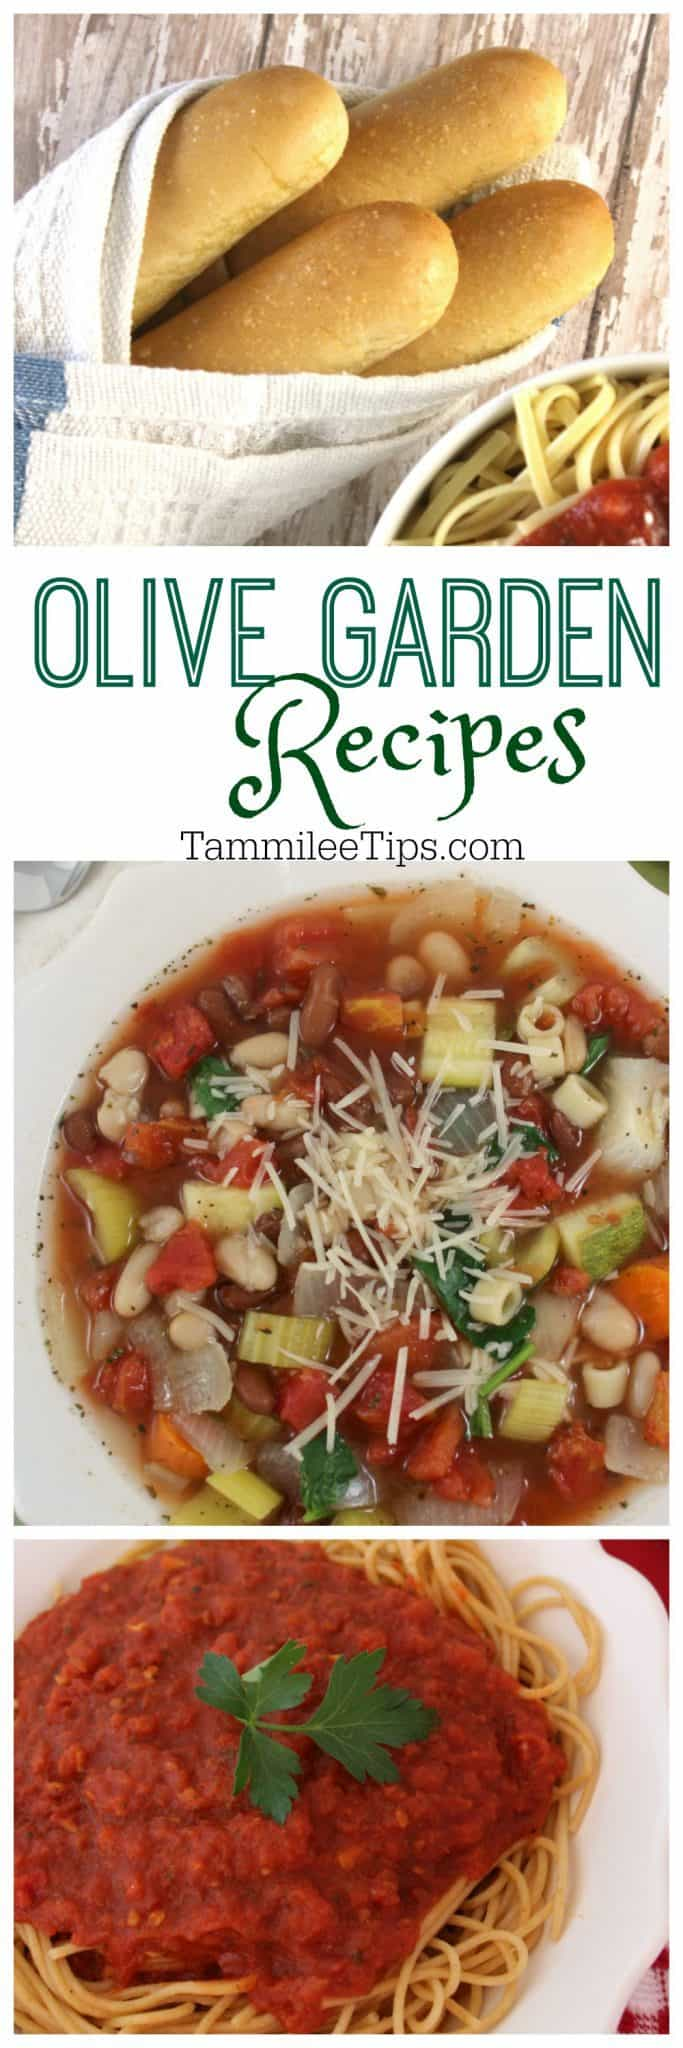 Olive Garden Recipes - Tammilee Tips